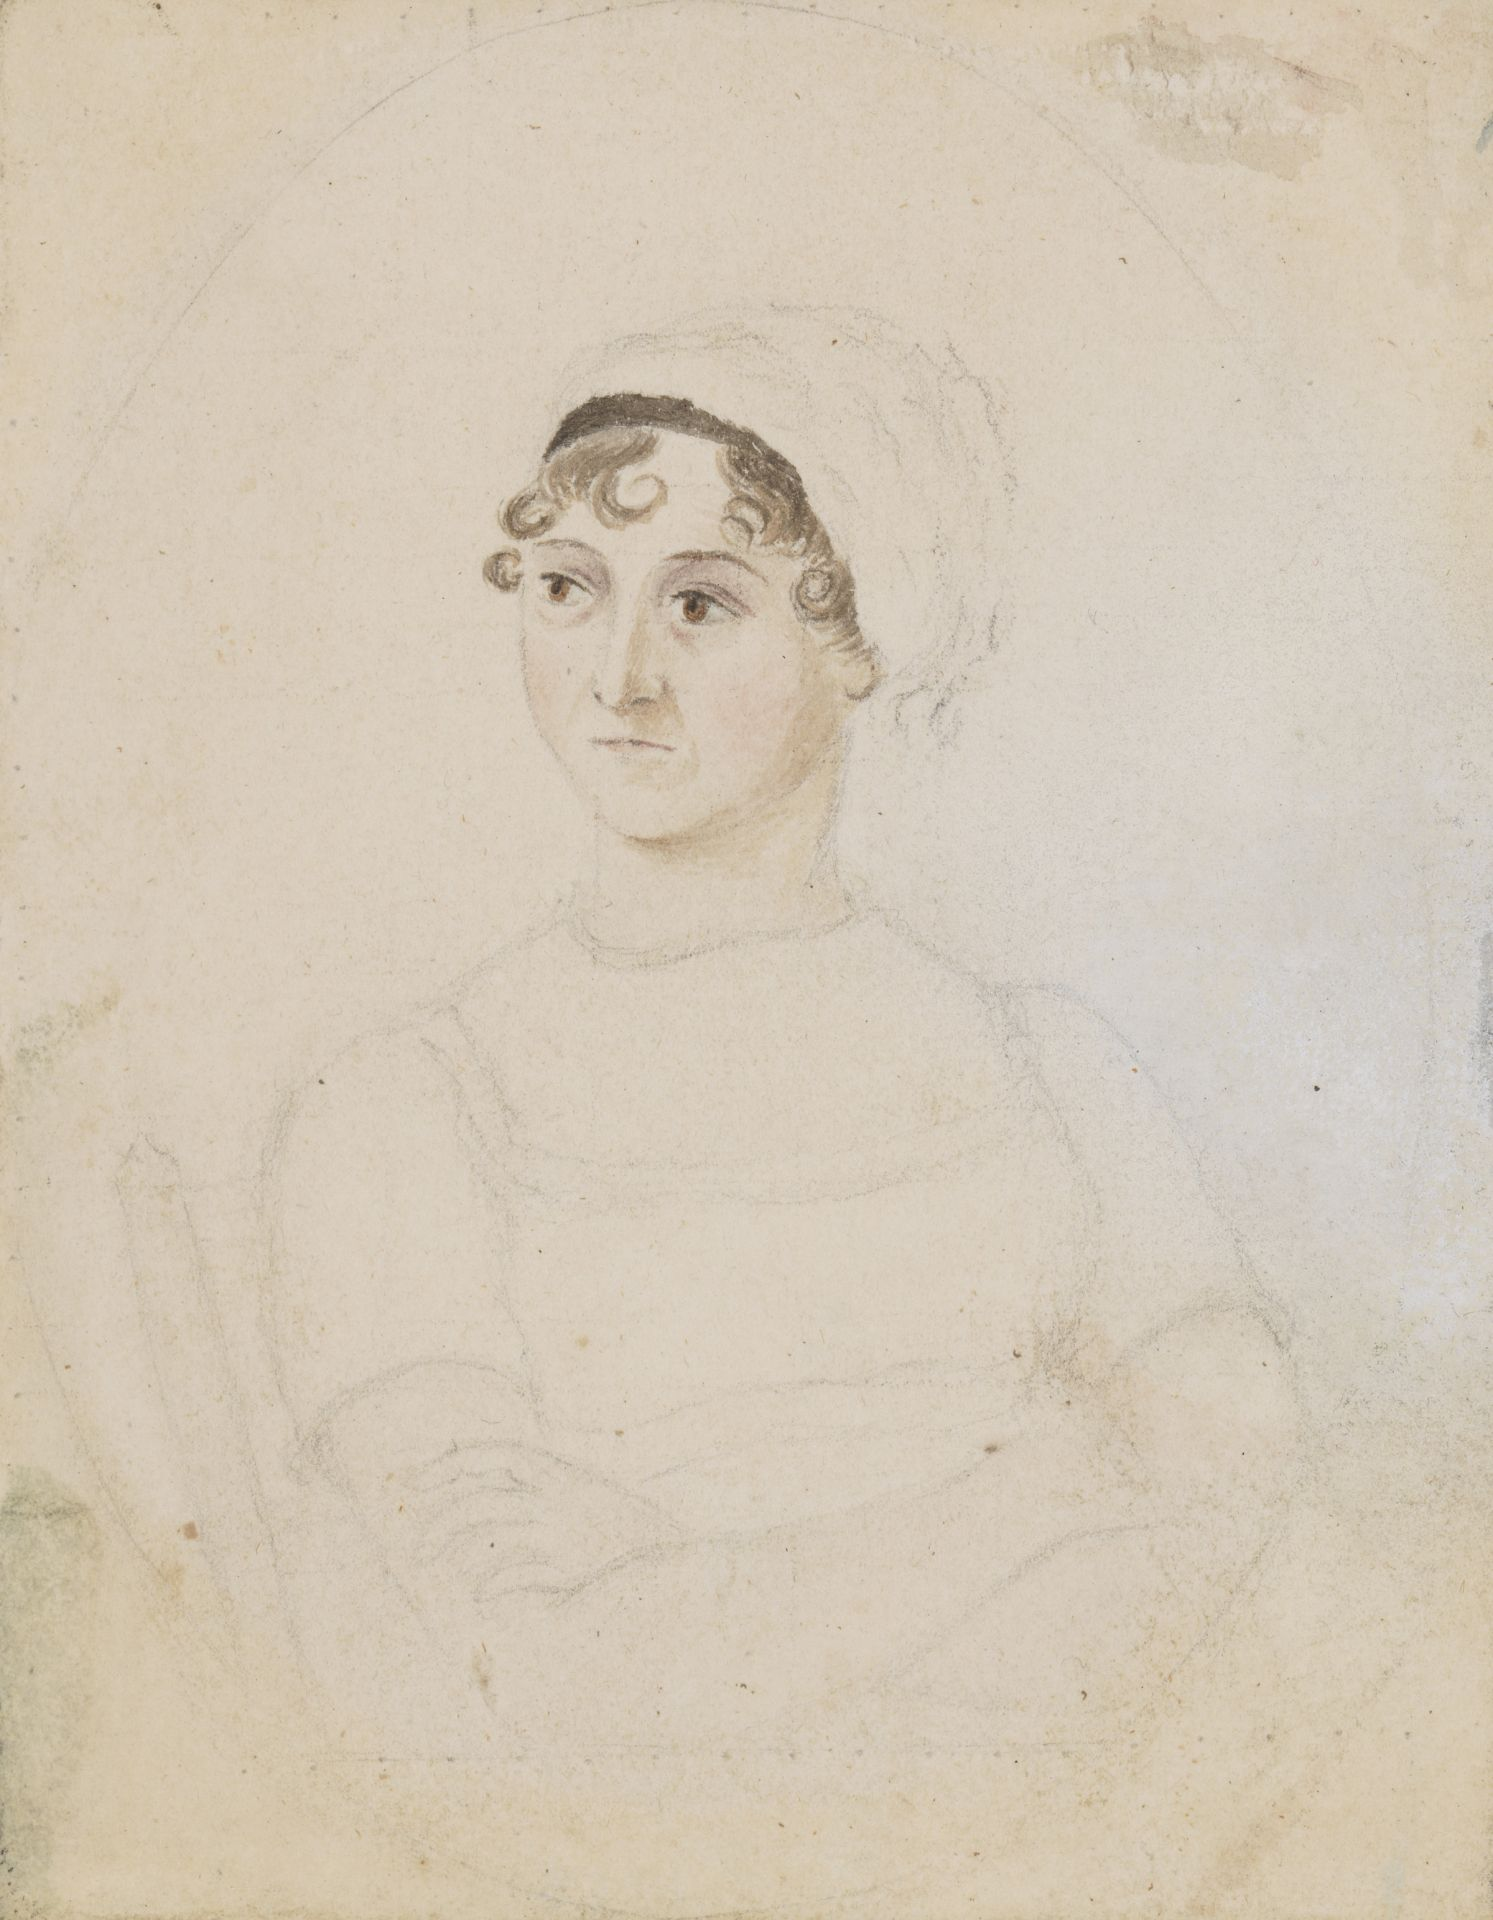 National Portrait Gallery: Portrait of Jane Austen by Cassandra Austen, circa 1810. Photo Credit: © National Portrait Gallery, London.